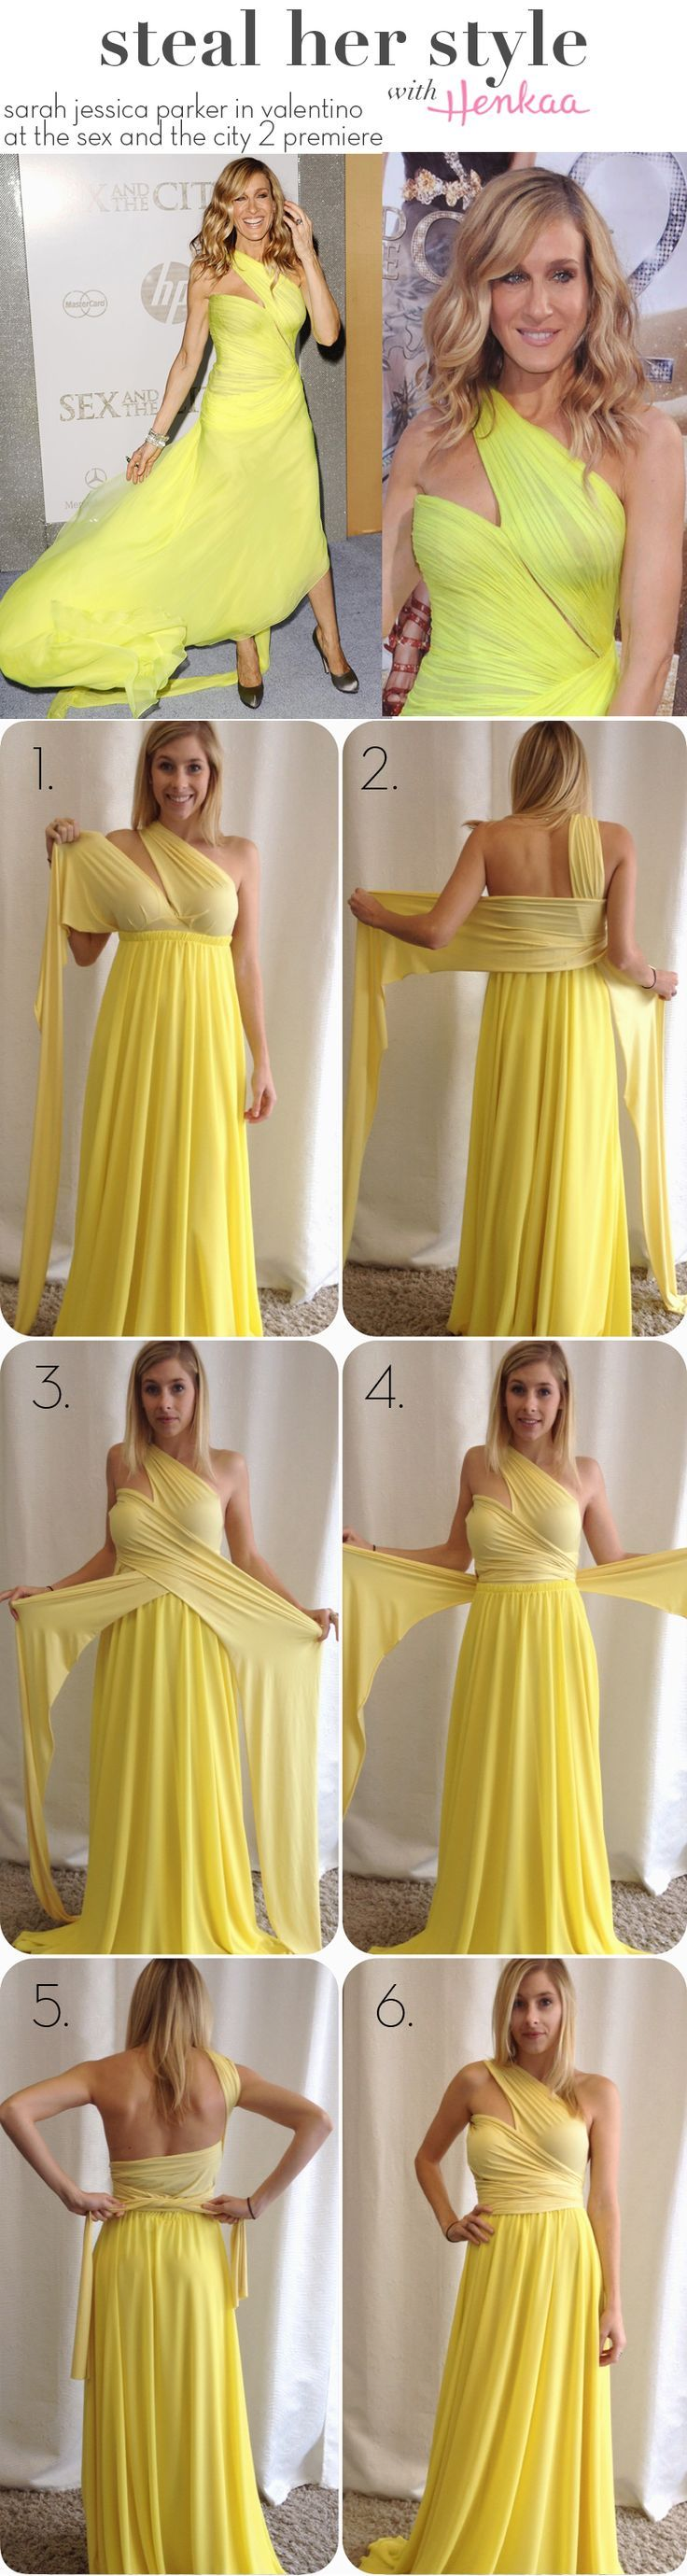 62 best infinity dress styles images on pinterest infinity dress steal sarah jessica parkers look with henkaas signature sakura convertible dress infinity dress ombrellifo Choice Image